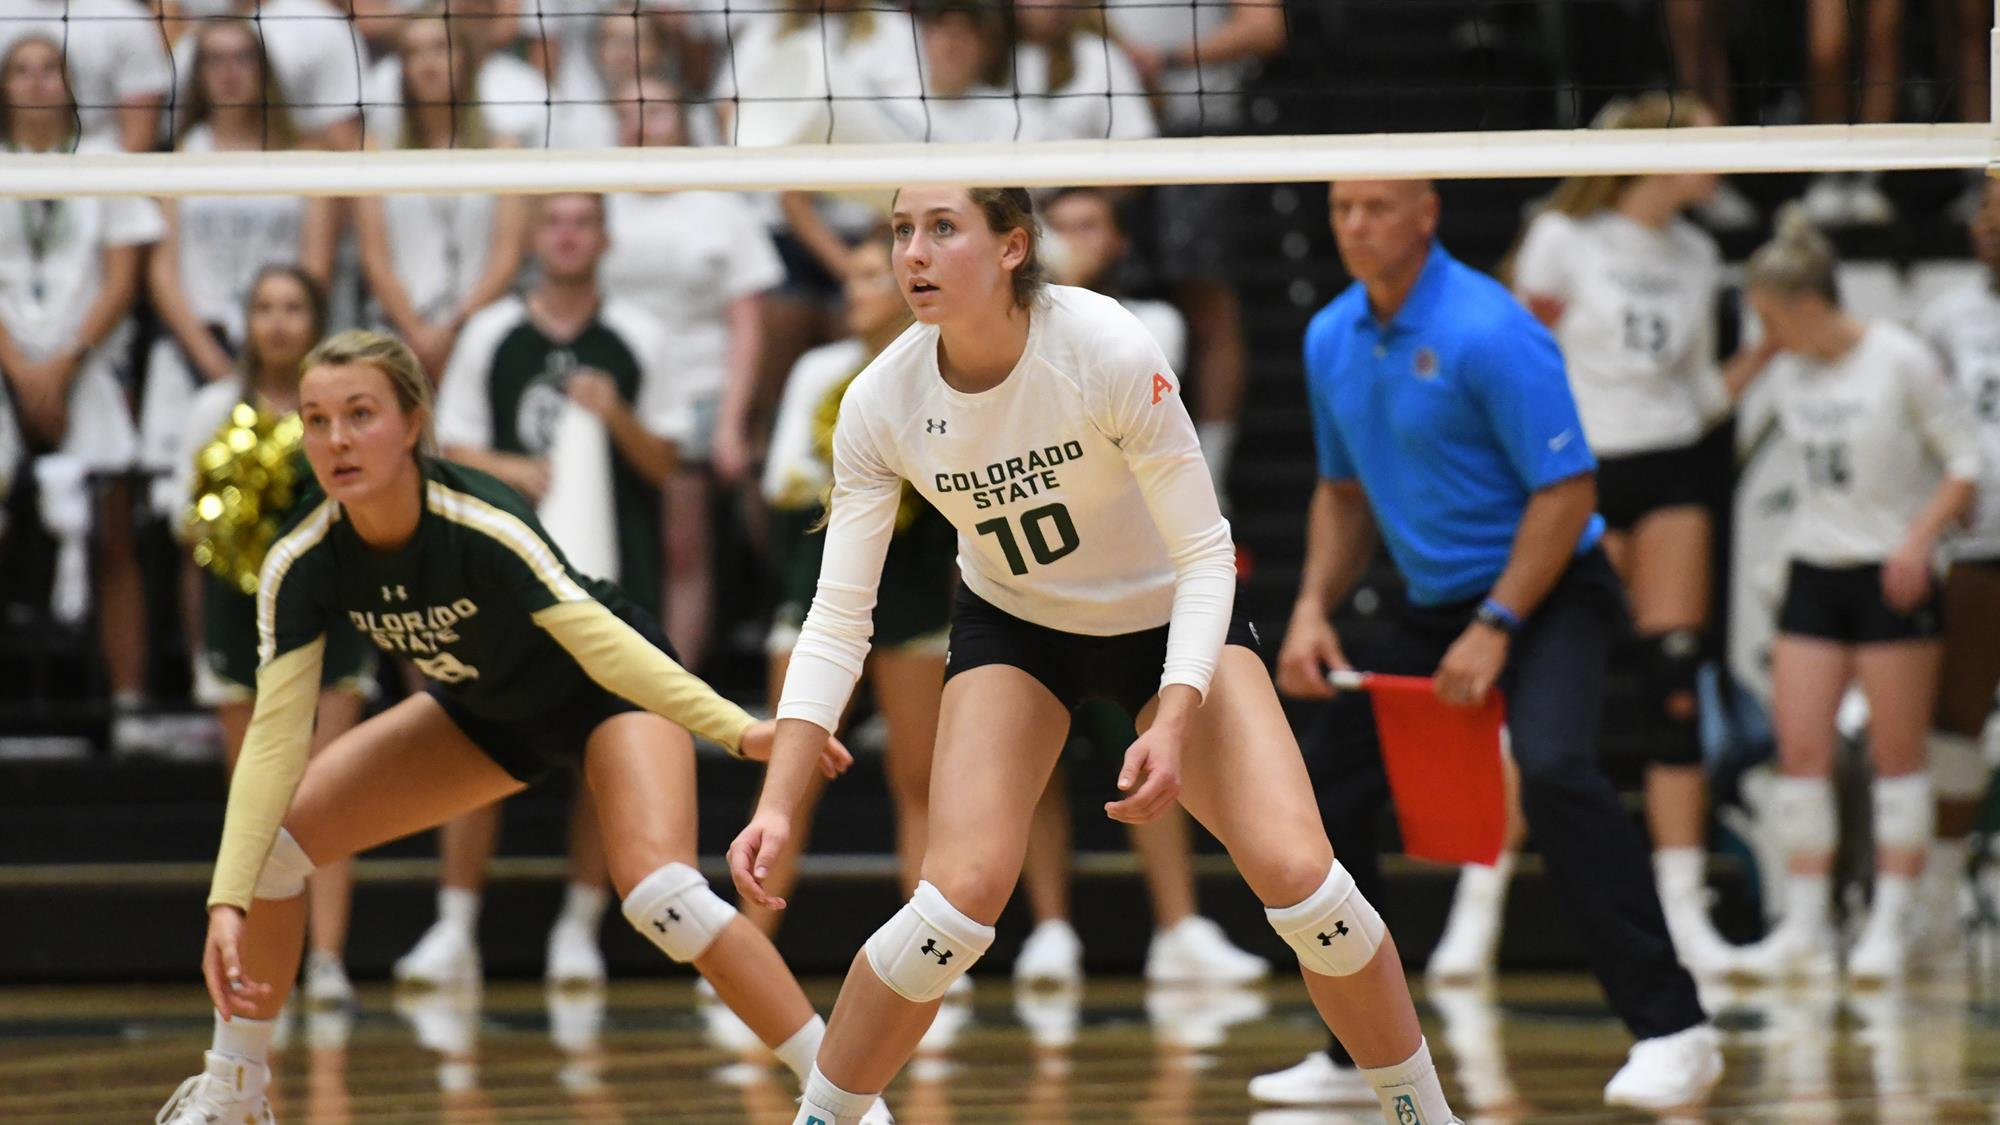 Jacqi Van Liefde Volleyball Colorado State University Athletics